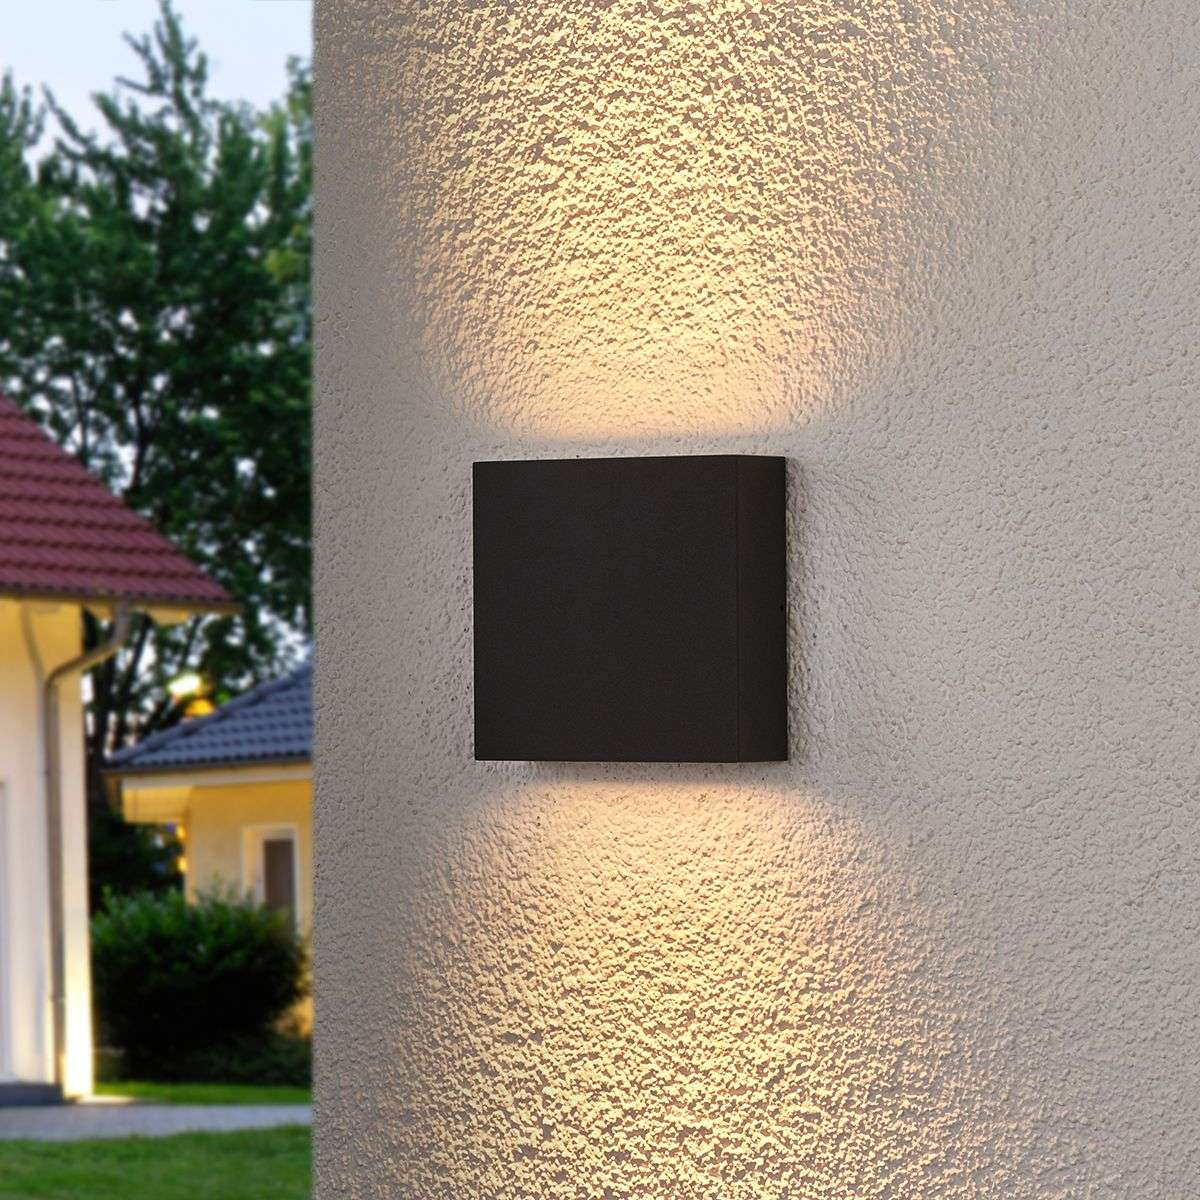 Square LED Outdoor Wall Light Trixy, Graphite Grey 9619075 31